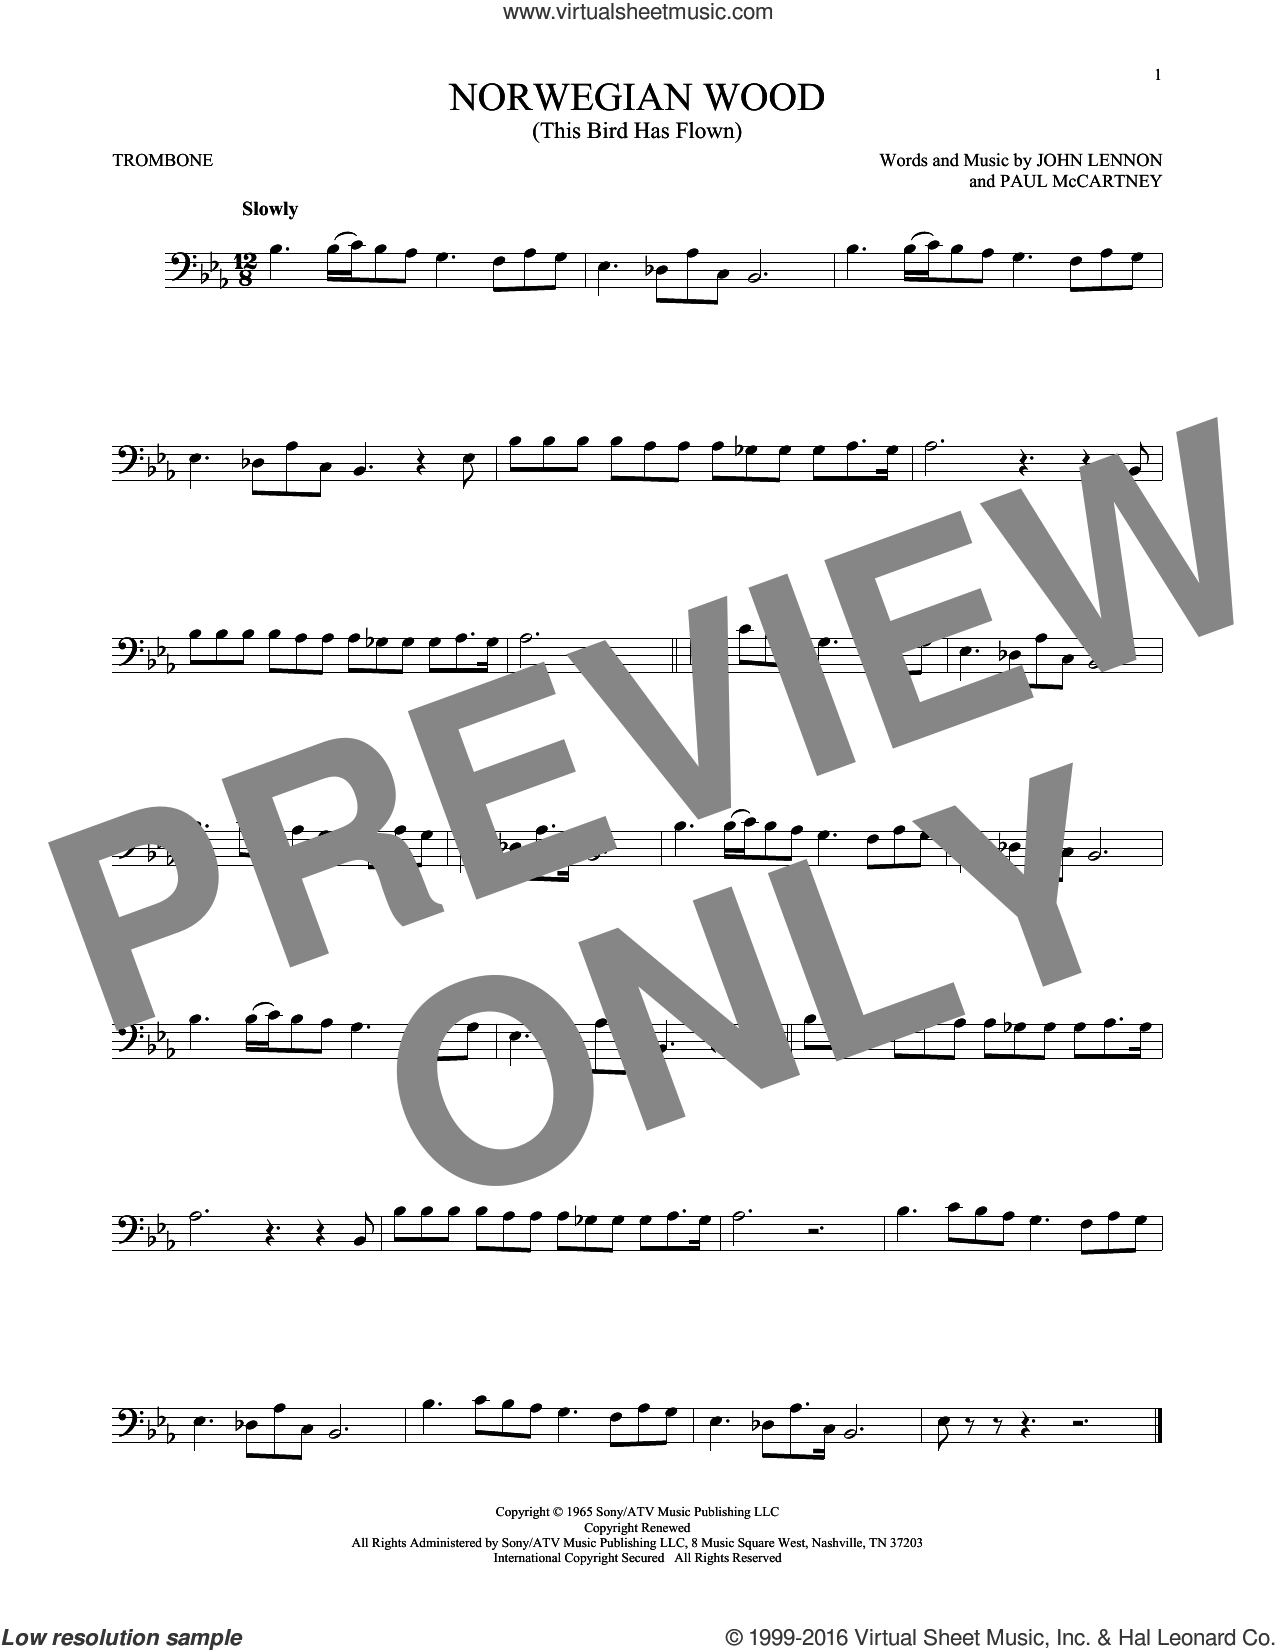 Norwegian Wood (This Bird Has Flown) sheet music for trombone solo by The Beatles, John Lennon and Paul McCartney. Score Image Preview.